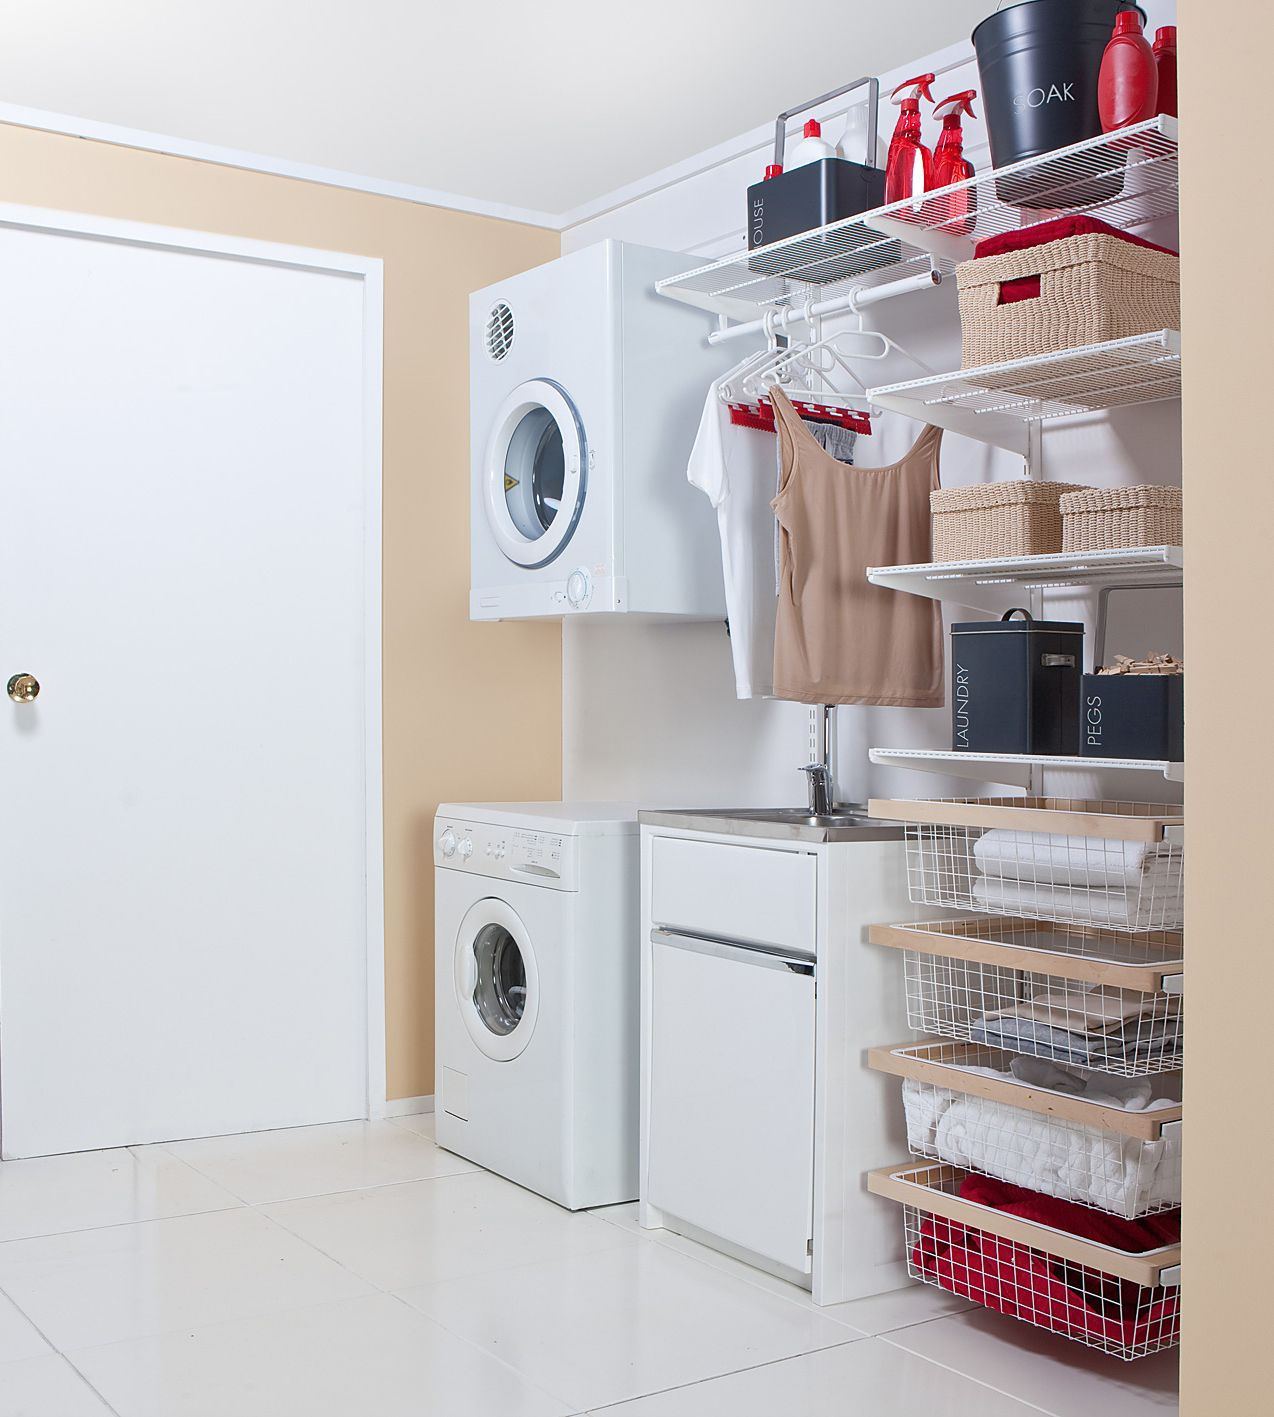 Elfa Also Has Sliding Doors To Close Off A Laundry Space Walk